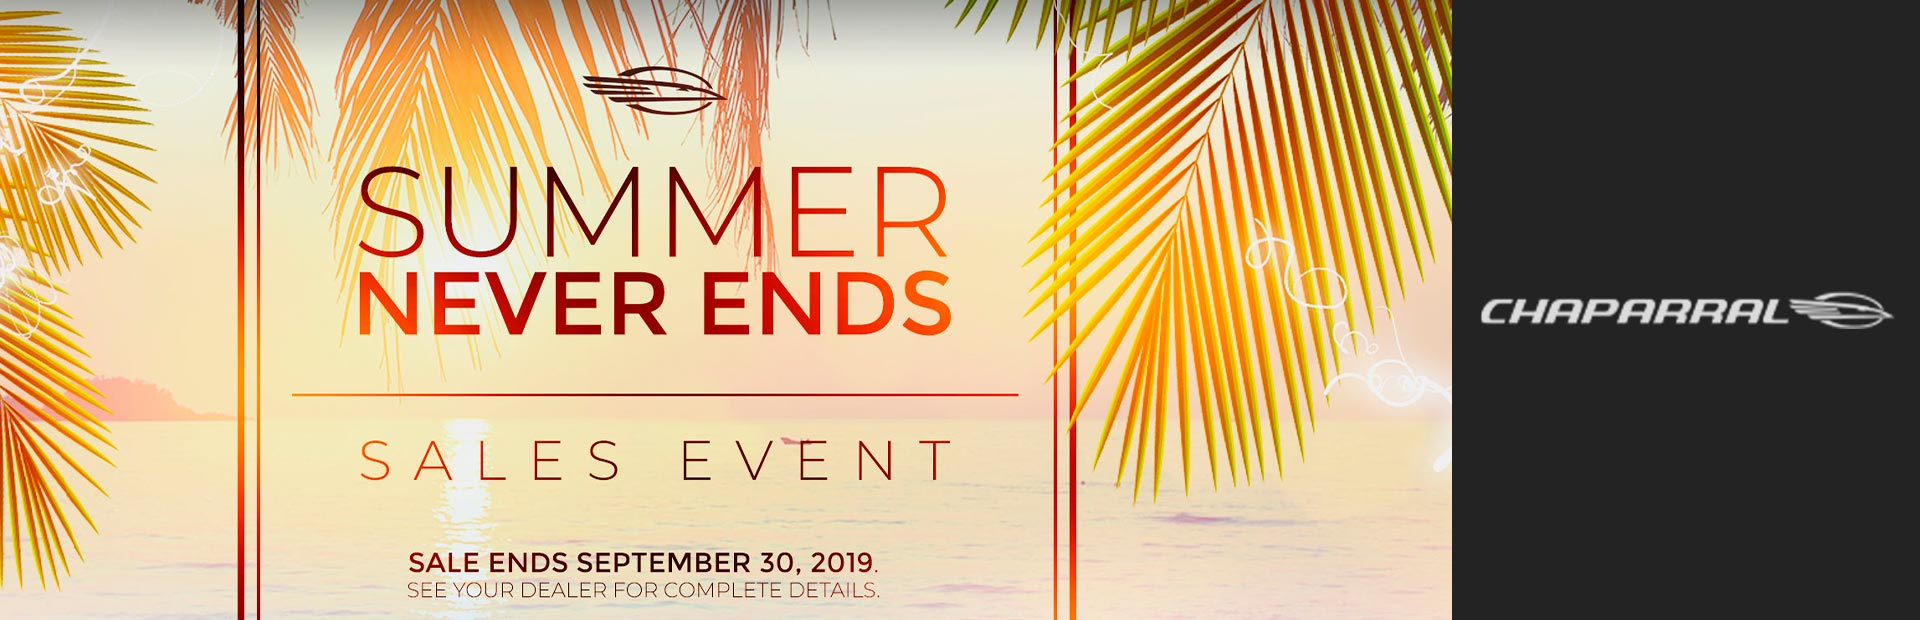 Chaparral: Summer Never Ends Sales Event